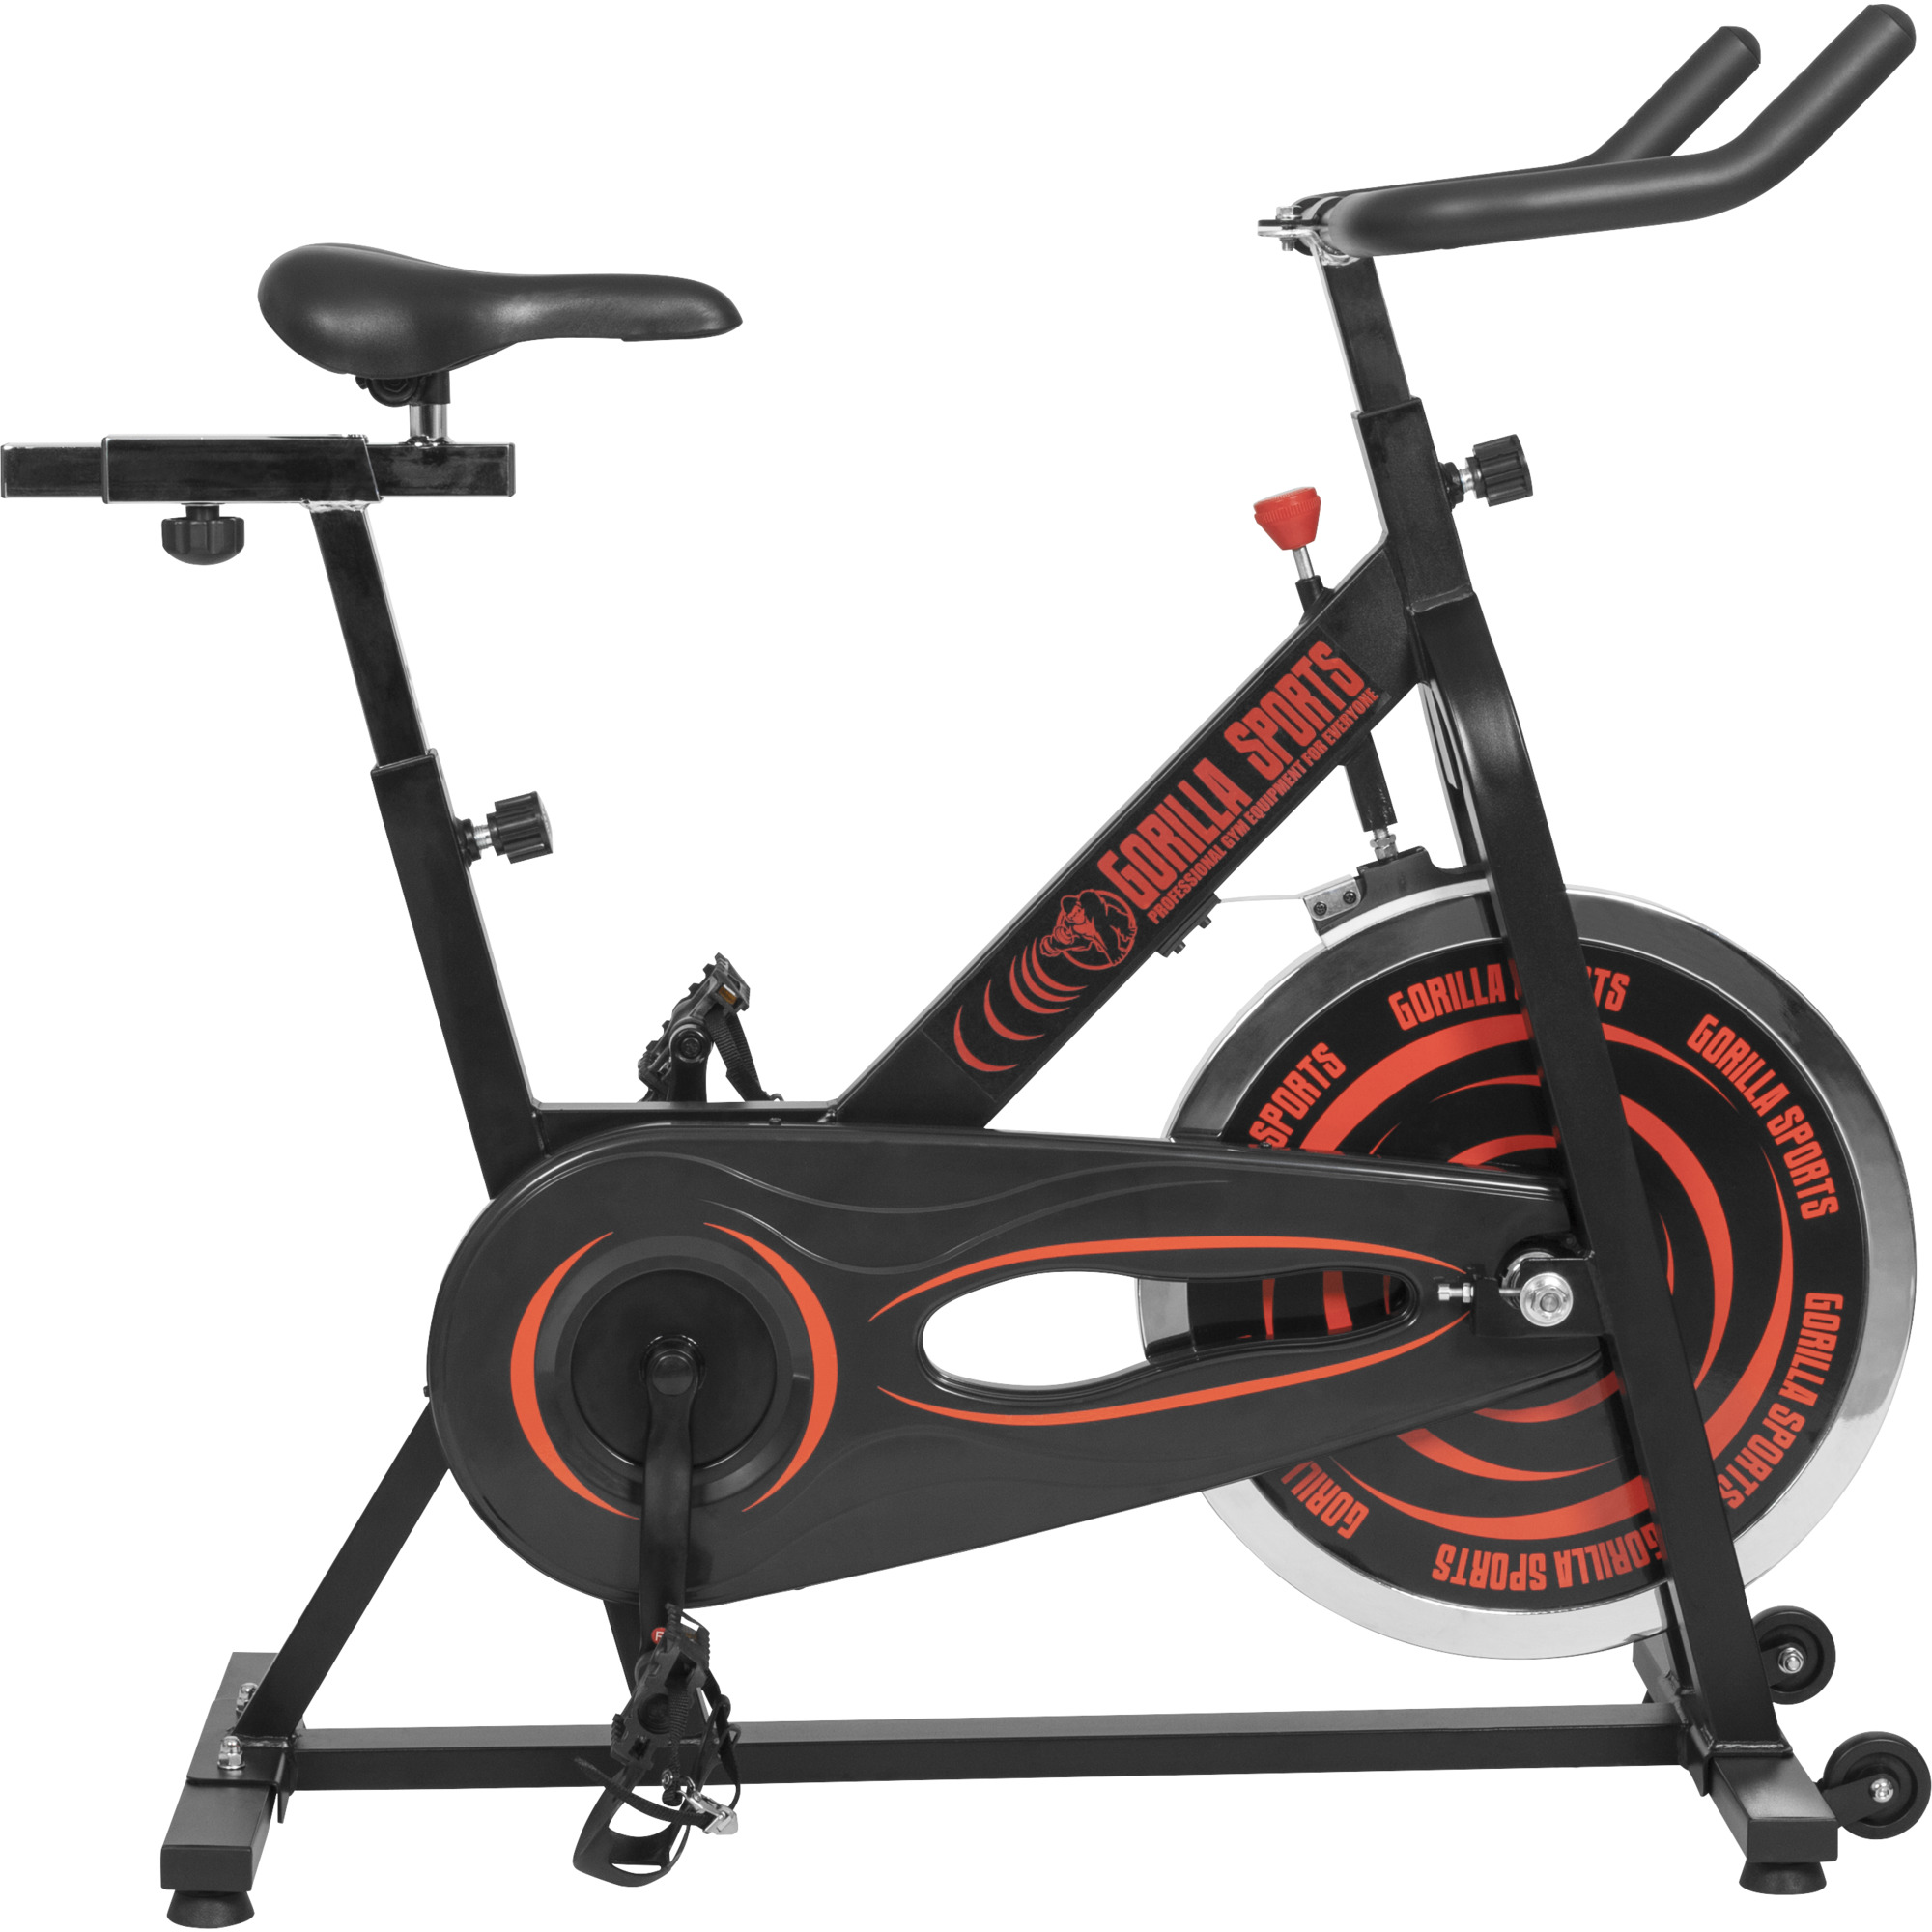 V lo d 39 appartement gorilla indoor cycling bike 10000618velo206 - Velo d appartement professionnel ...